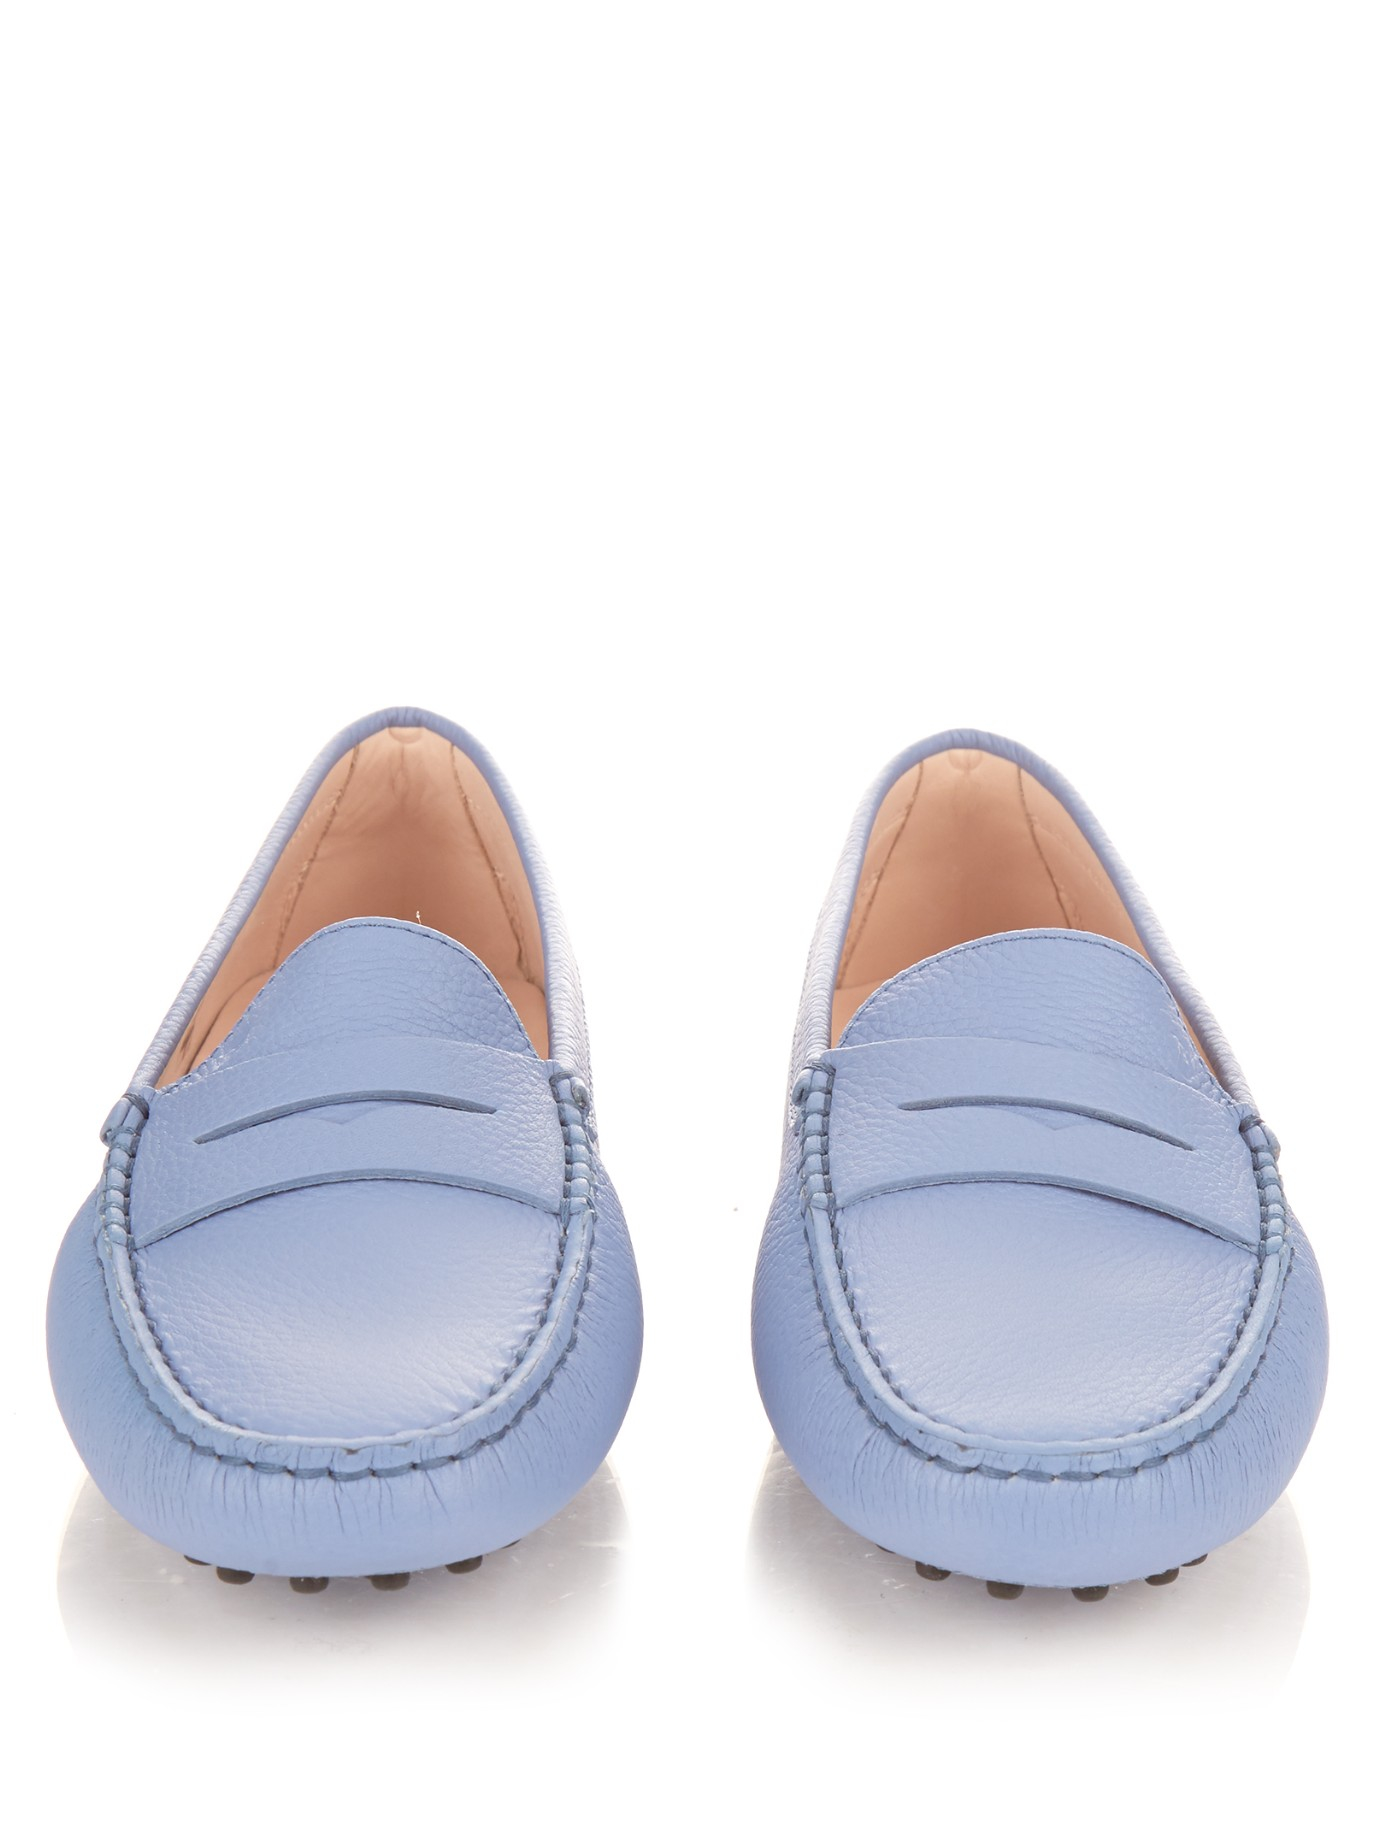 7bfbfa88112 Gallery. Previously sold at  MATCHESFASHION.COM · Women s Tods Gommino  Women s Embroidered Flats ...